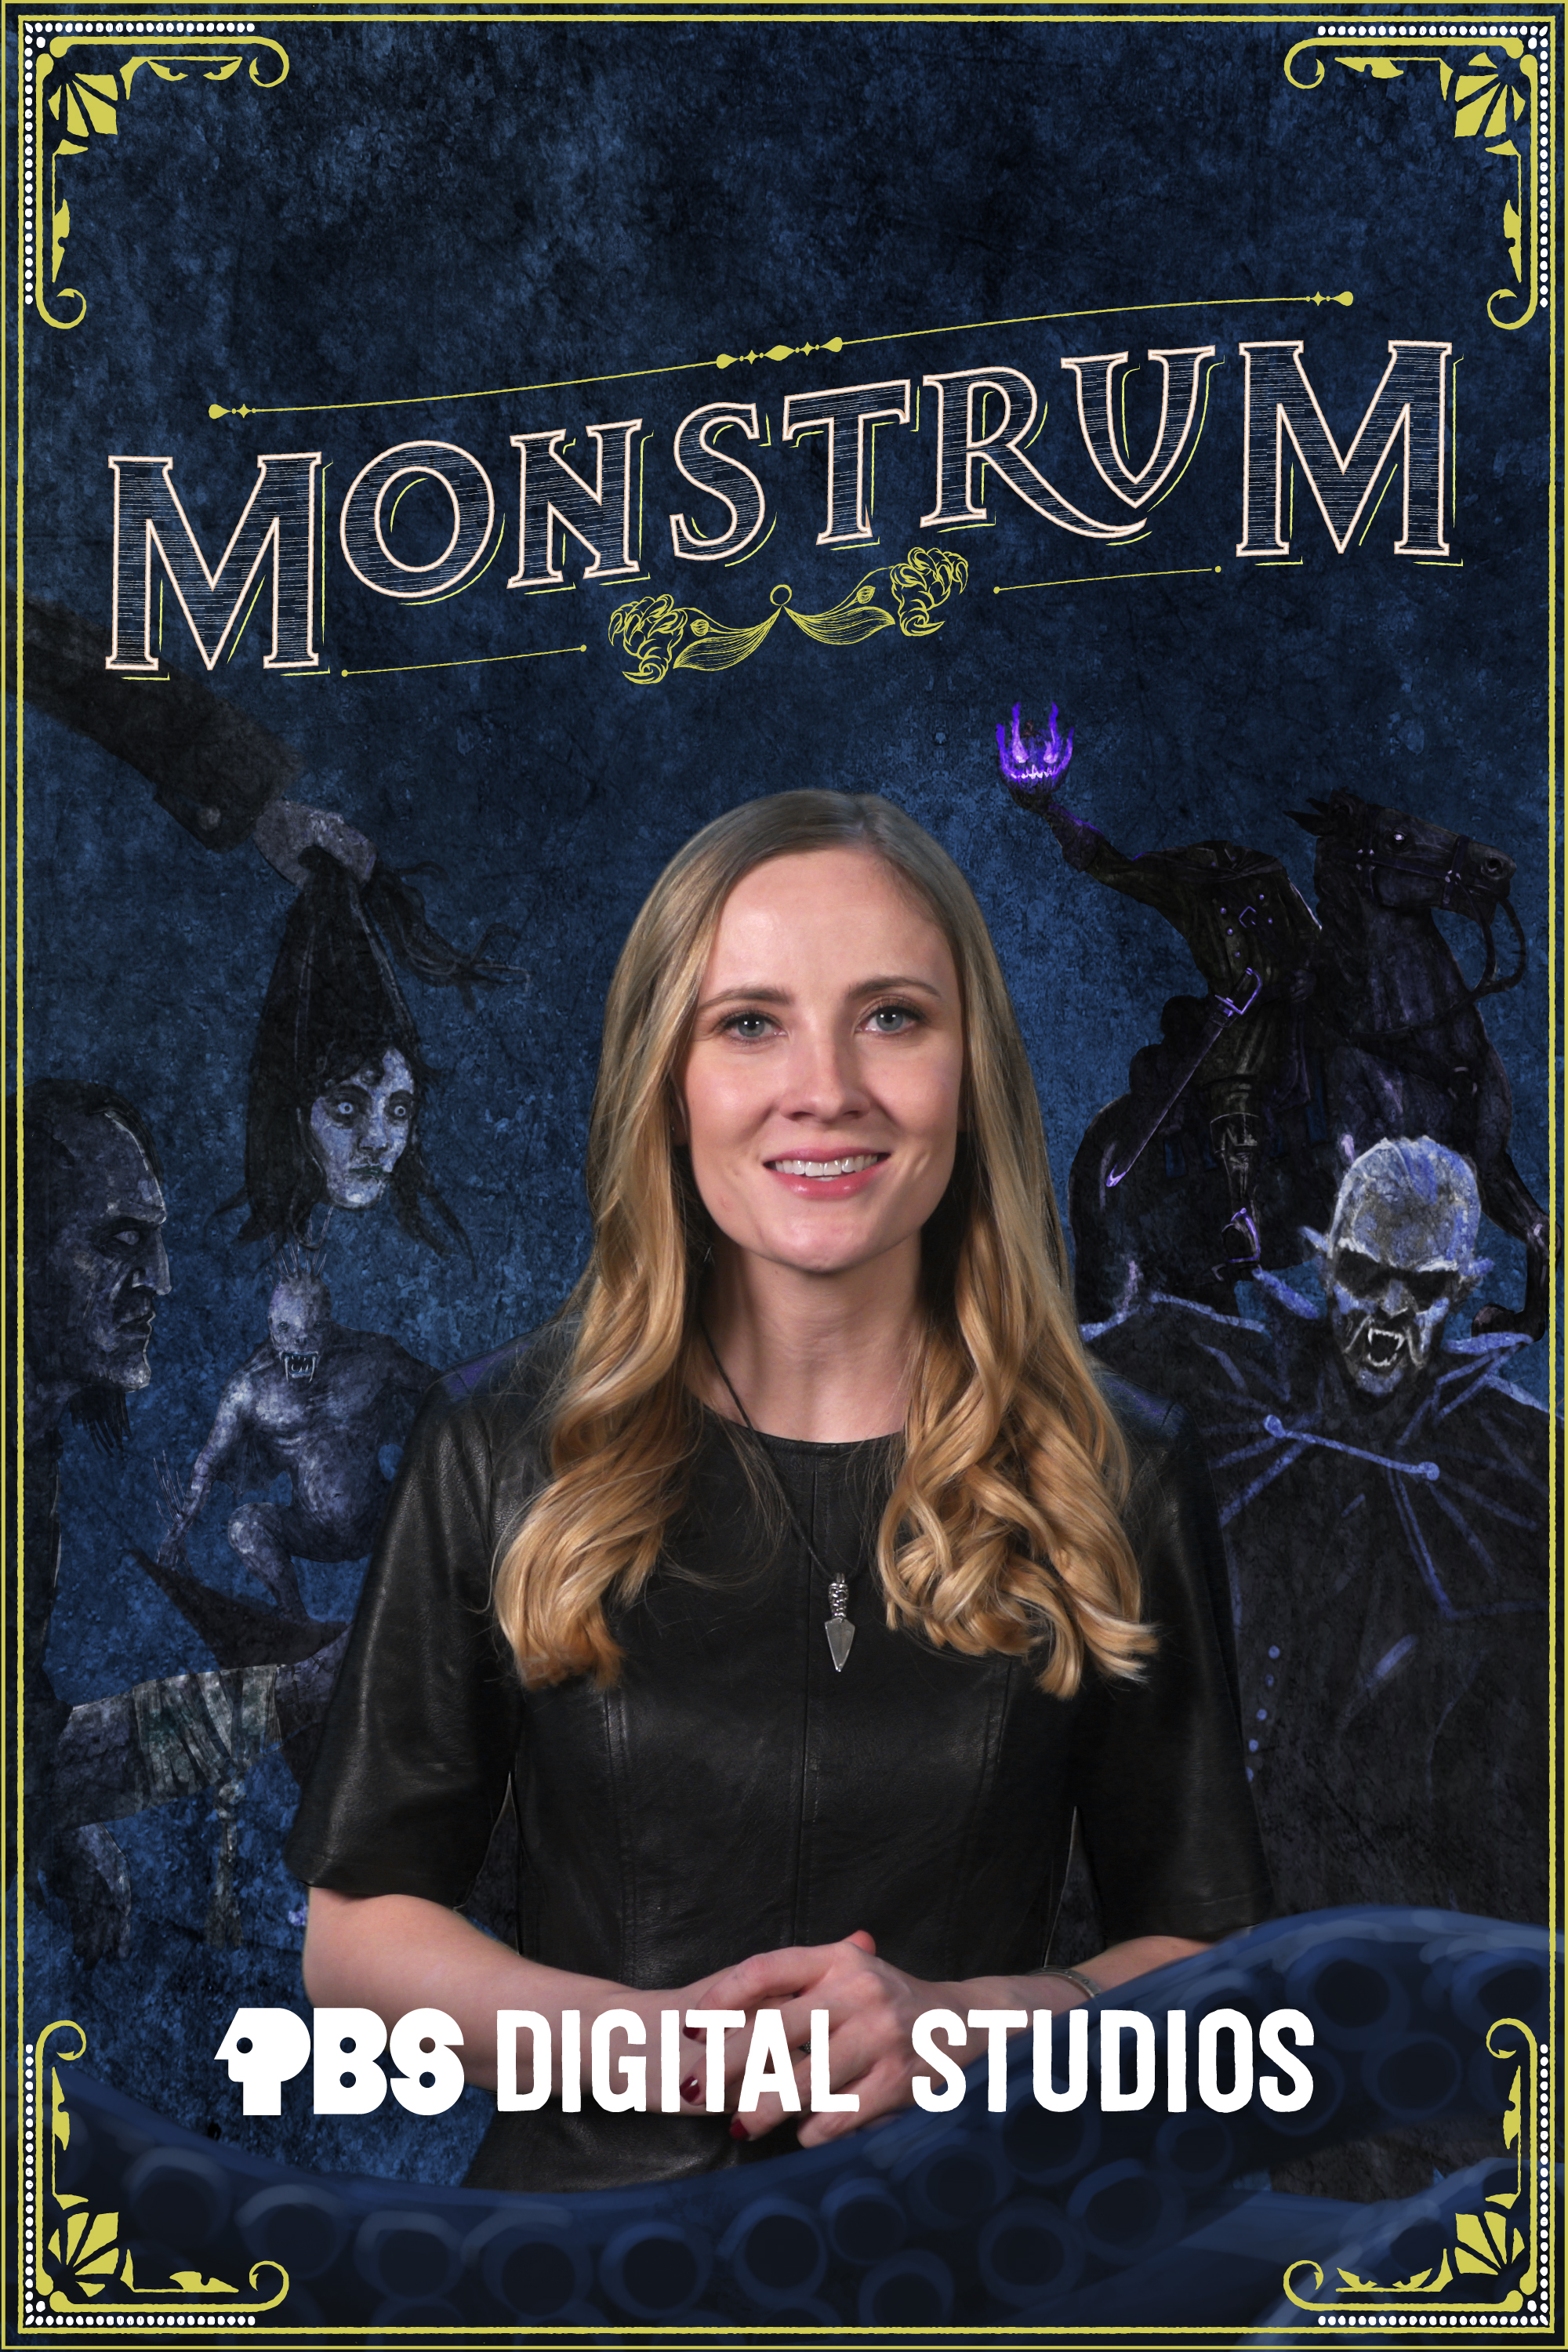 The world is full of monsters, myths, and legends and Monstrum isn't afraid to take a closer look. The show, hosted by Emily Zarka, Ph.D., takes us on a journey to discover a new monster for each new episode. Monstrum looks at humans unique drive to create and shape monster mythology through oral storytelling, literature, and film and digs deep into the history of those mythologies.